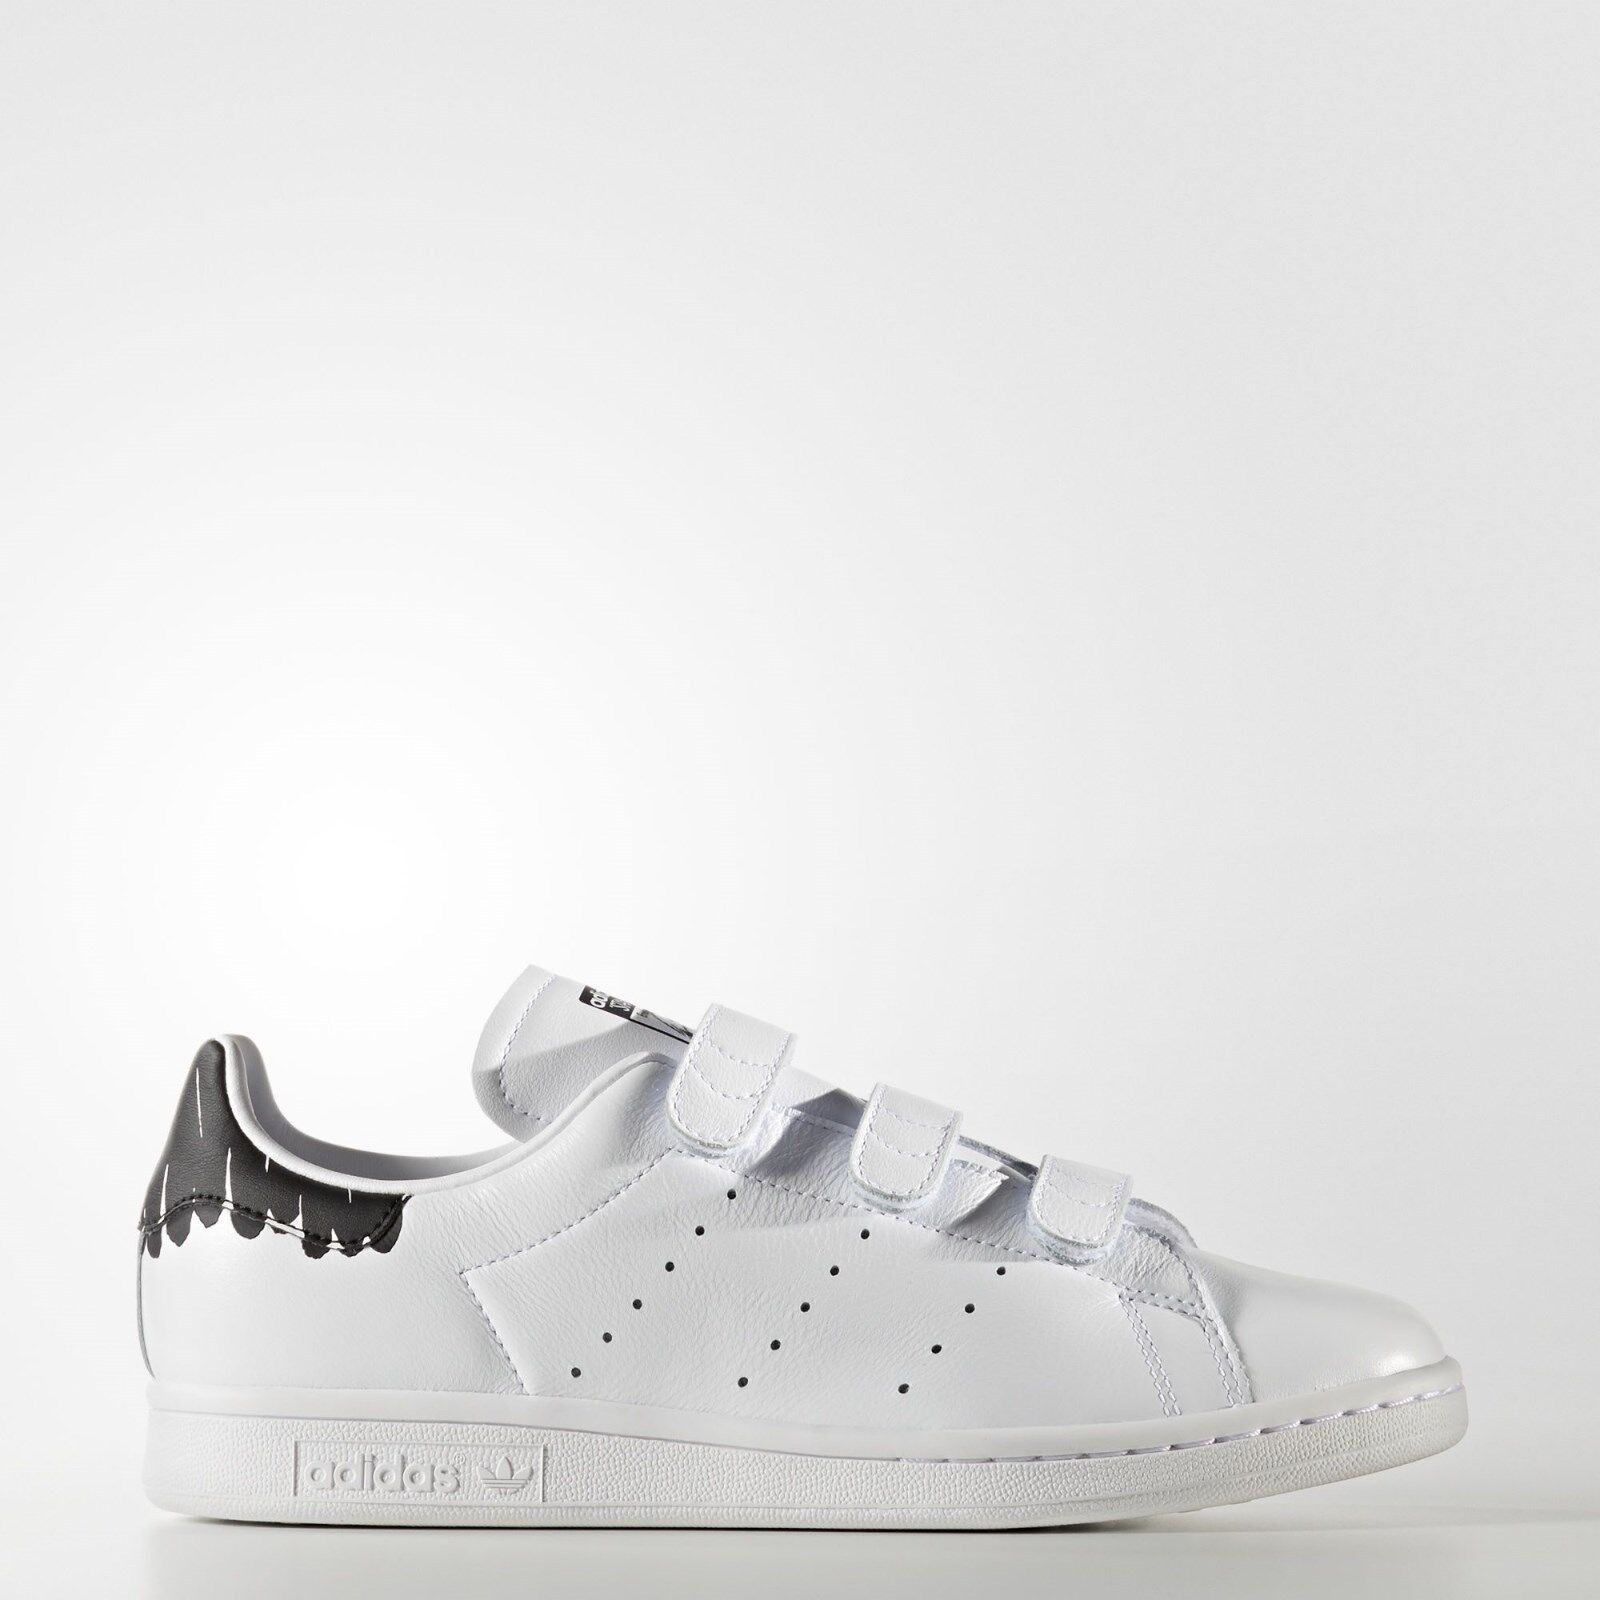 Adidas Originals Women's Stan Smith Shoes Size 7 us BY2975 LAST PAIR